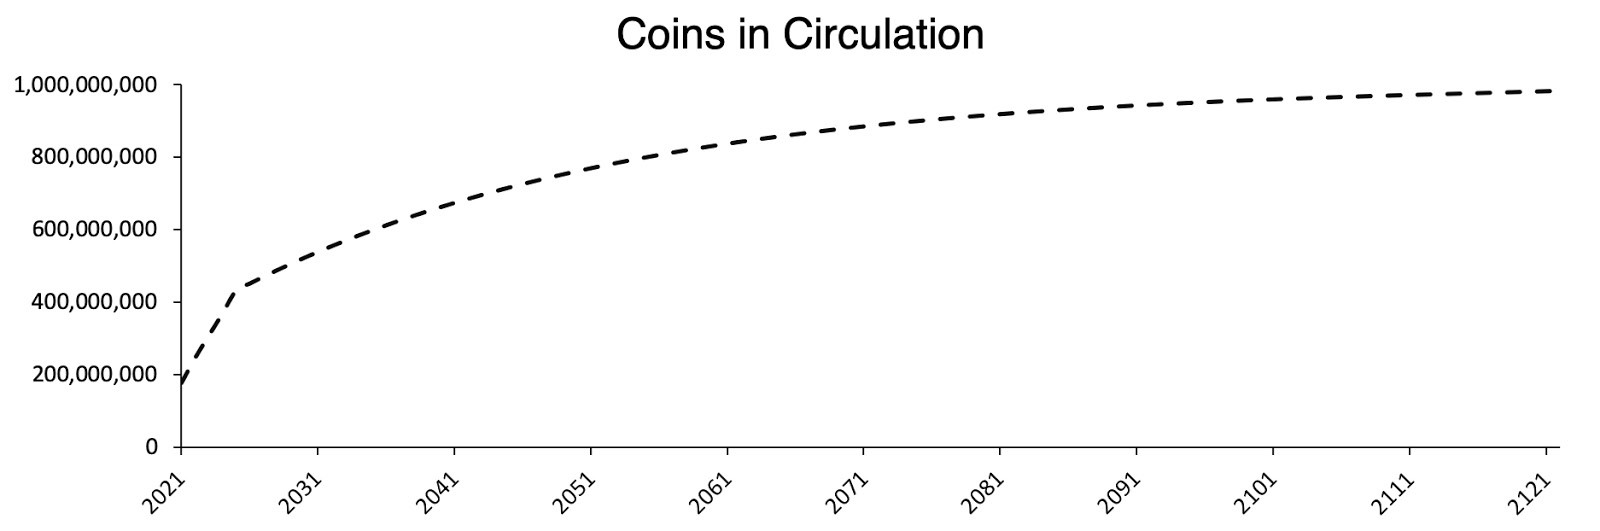 Coins in circulation over time